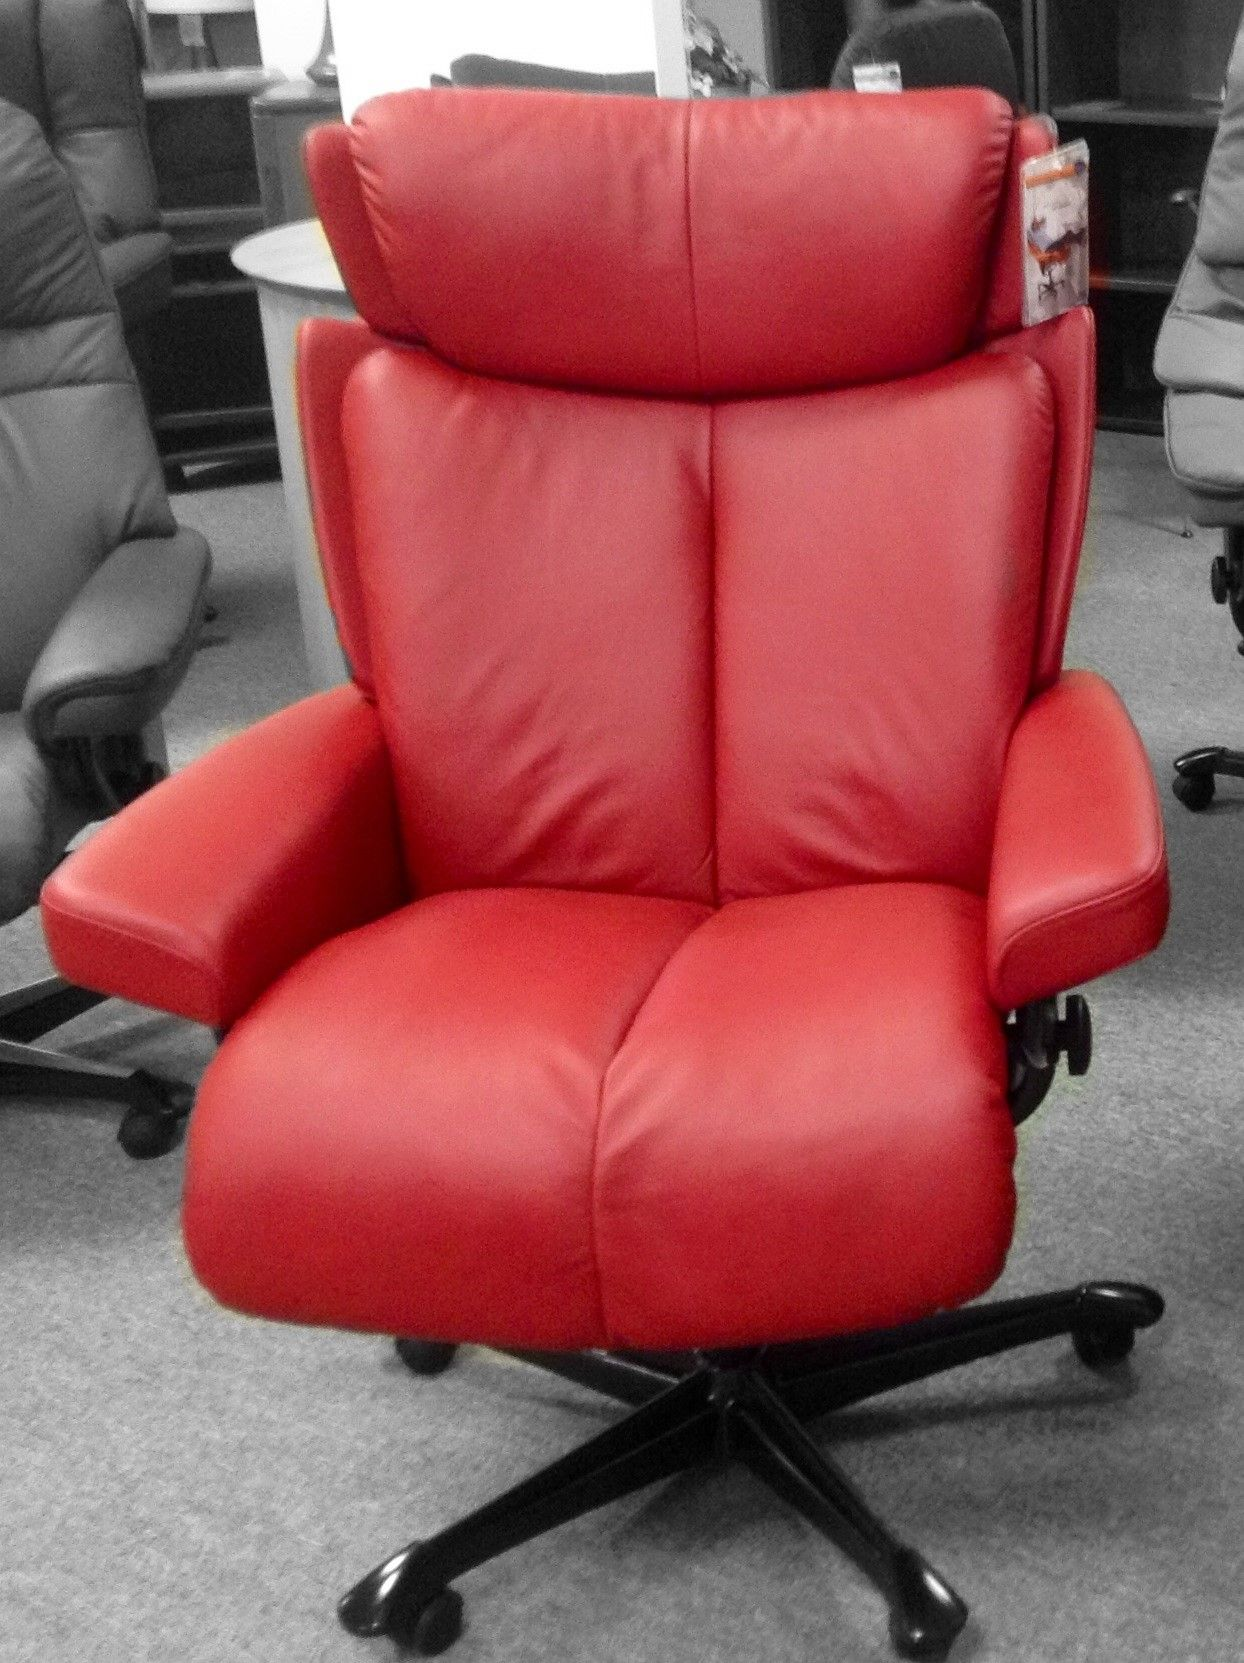 stressless chair similar two seater dining table and chairs india magic office paloma cherry available at